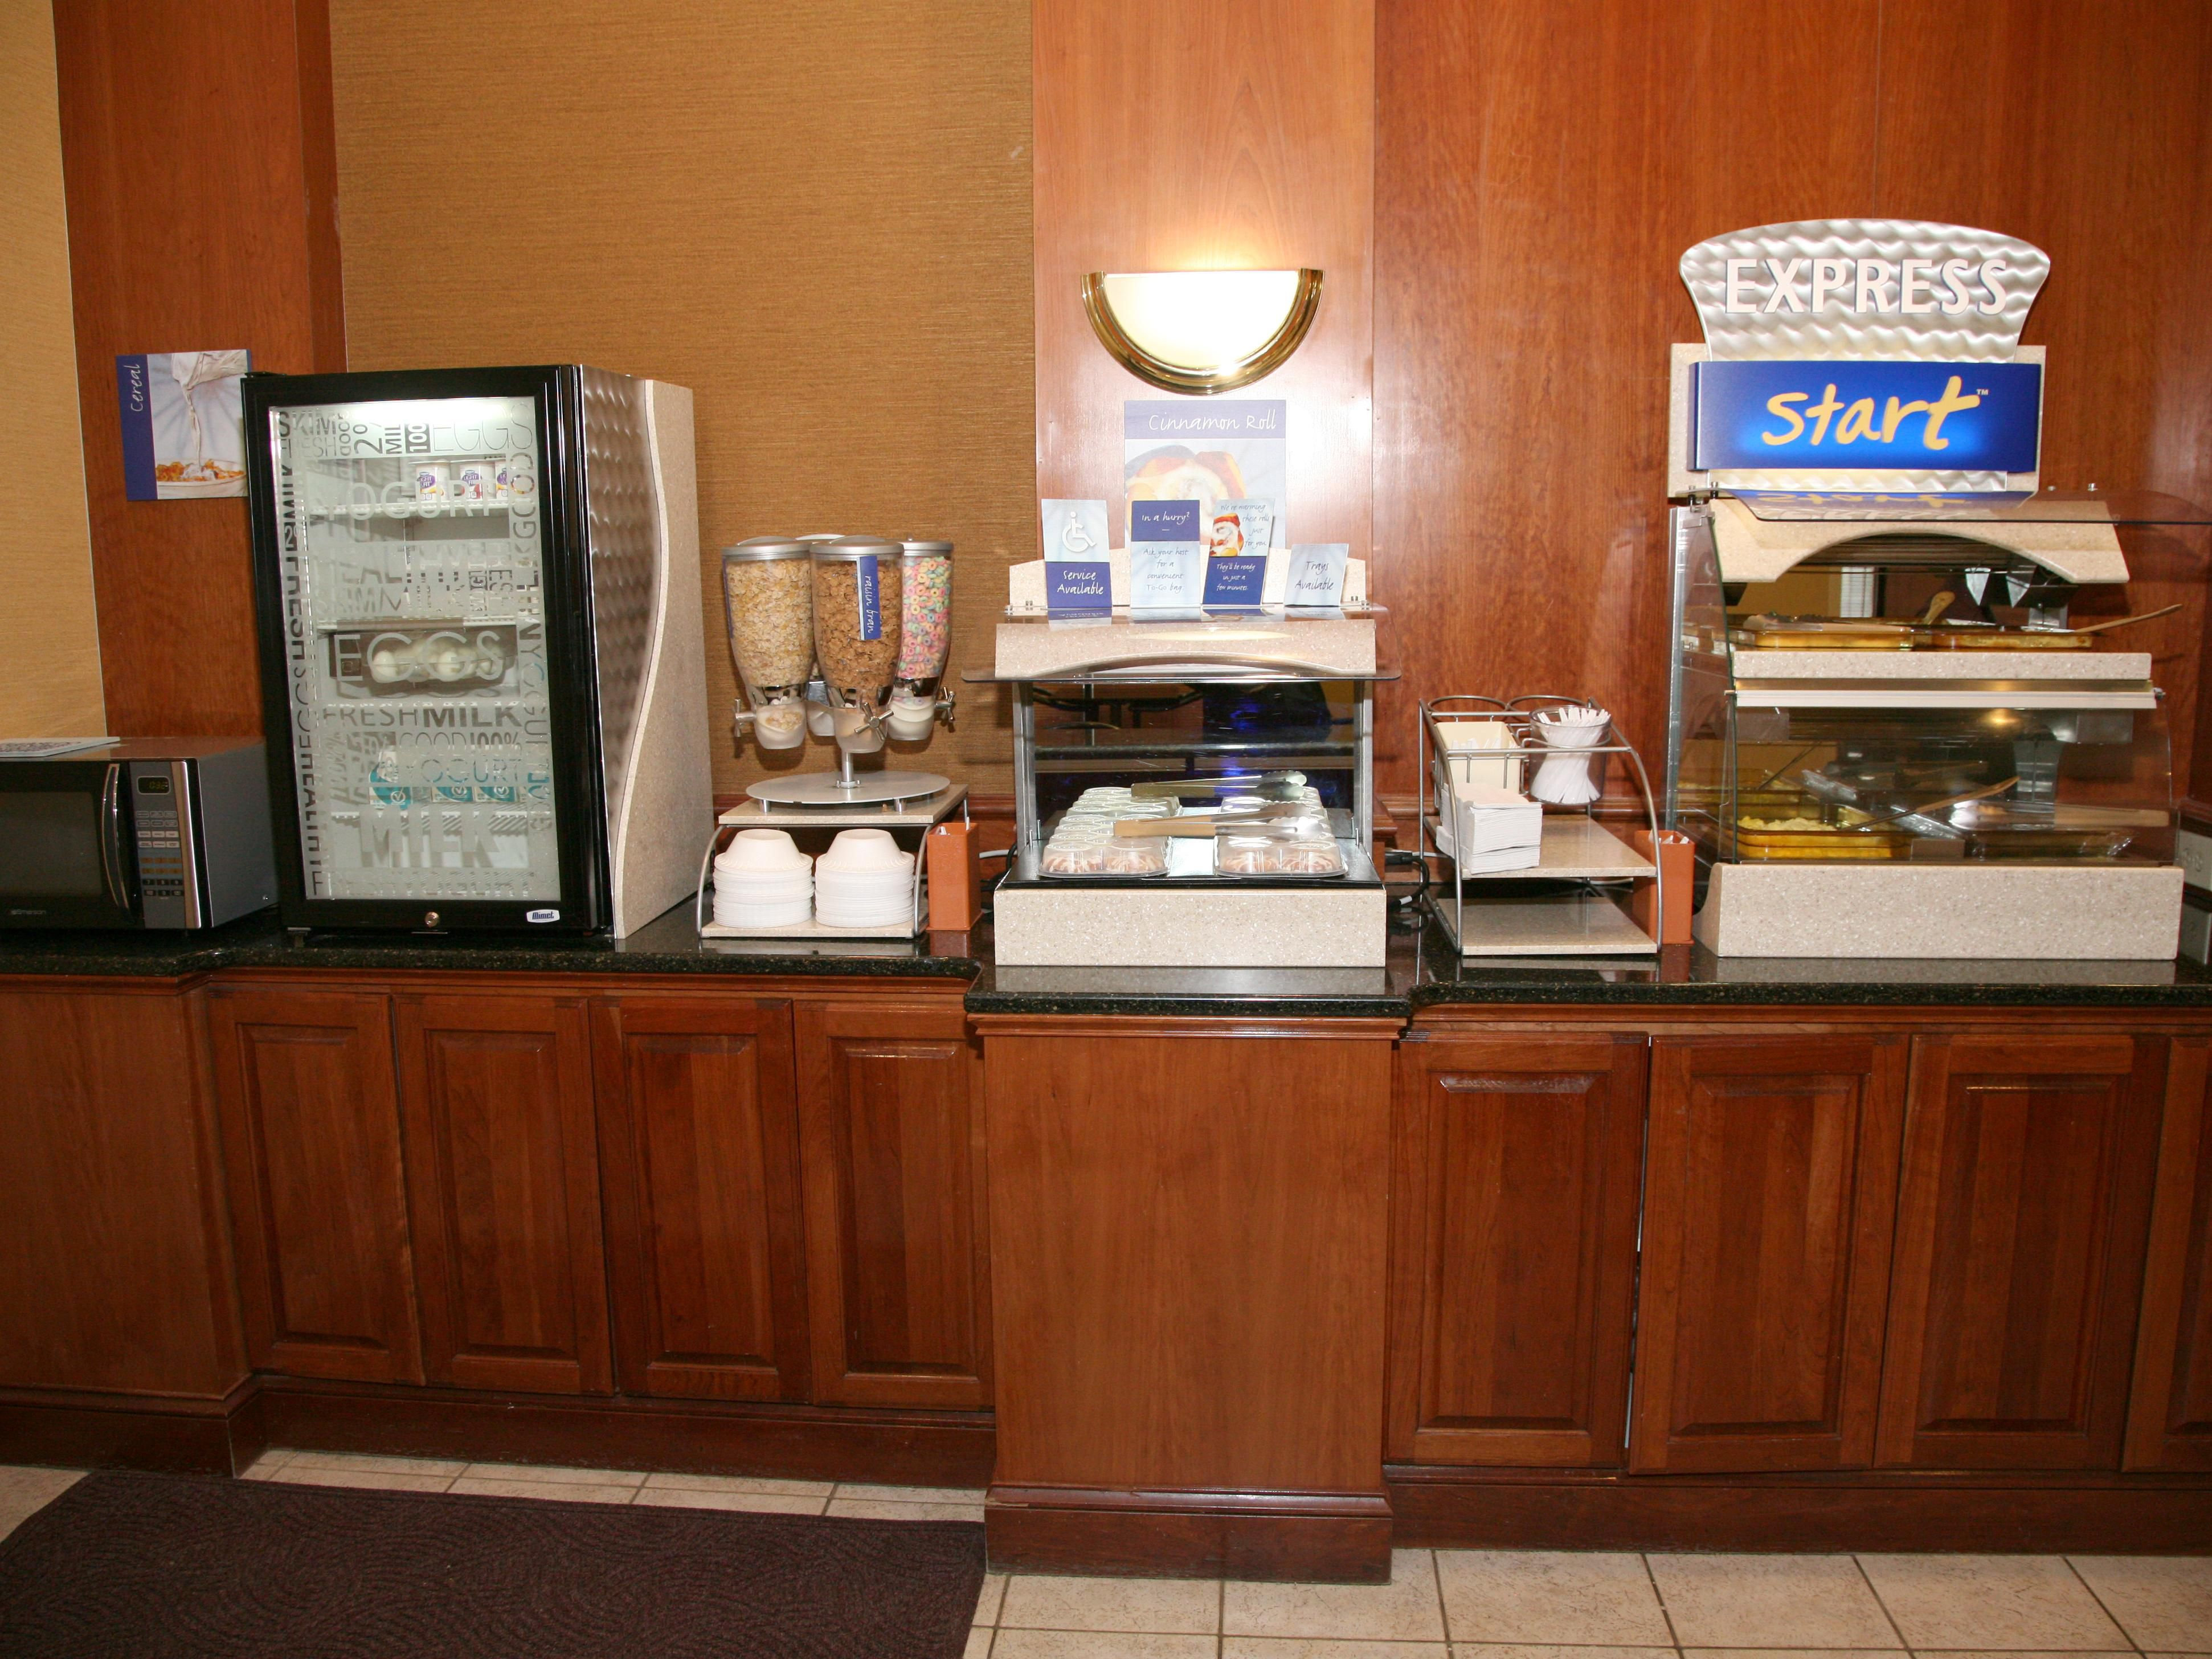 Up Close View of Breakfast Bar